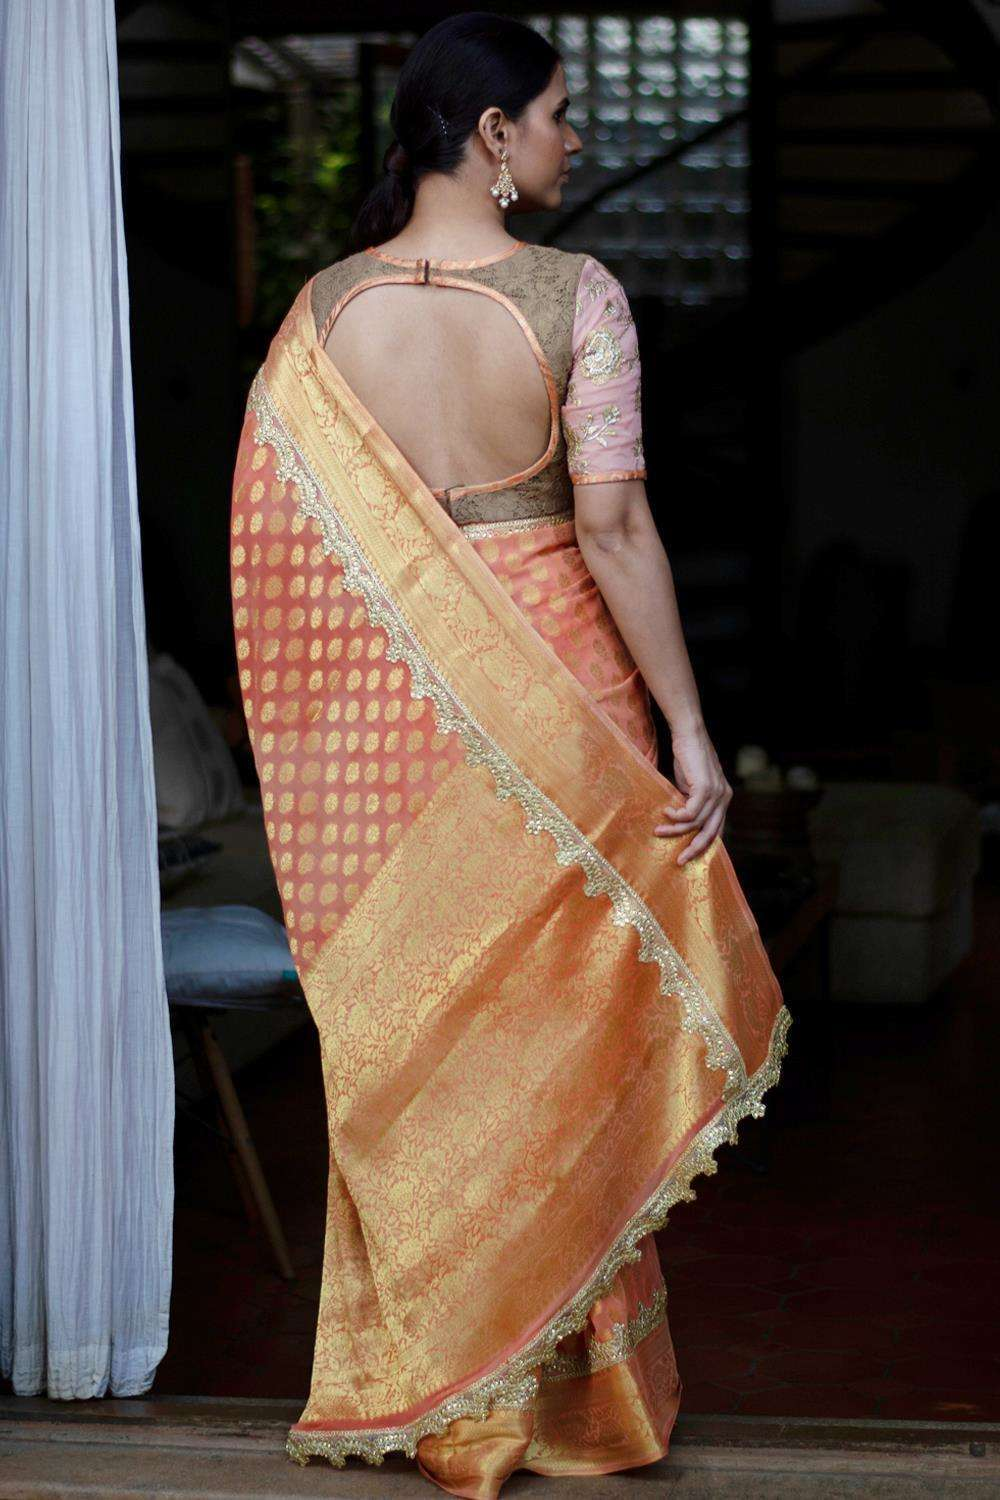 Banarasi chiffon saree in pale orange, with zari buttis and a kundan worked border